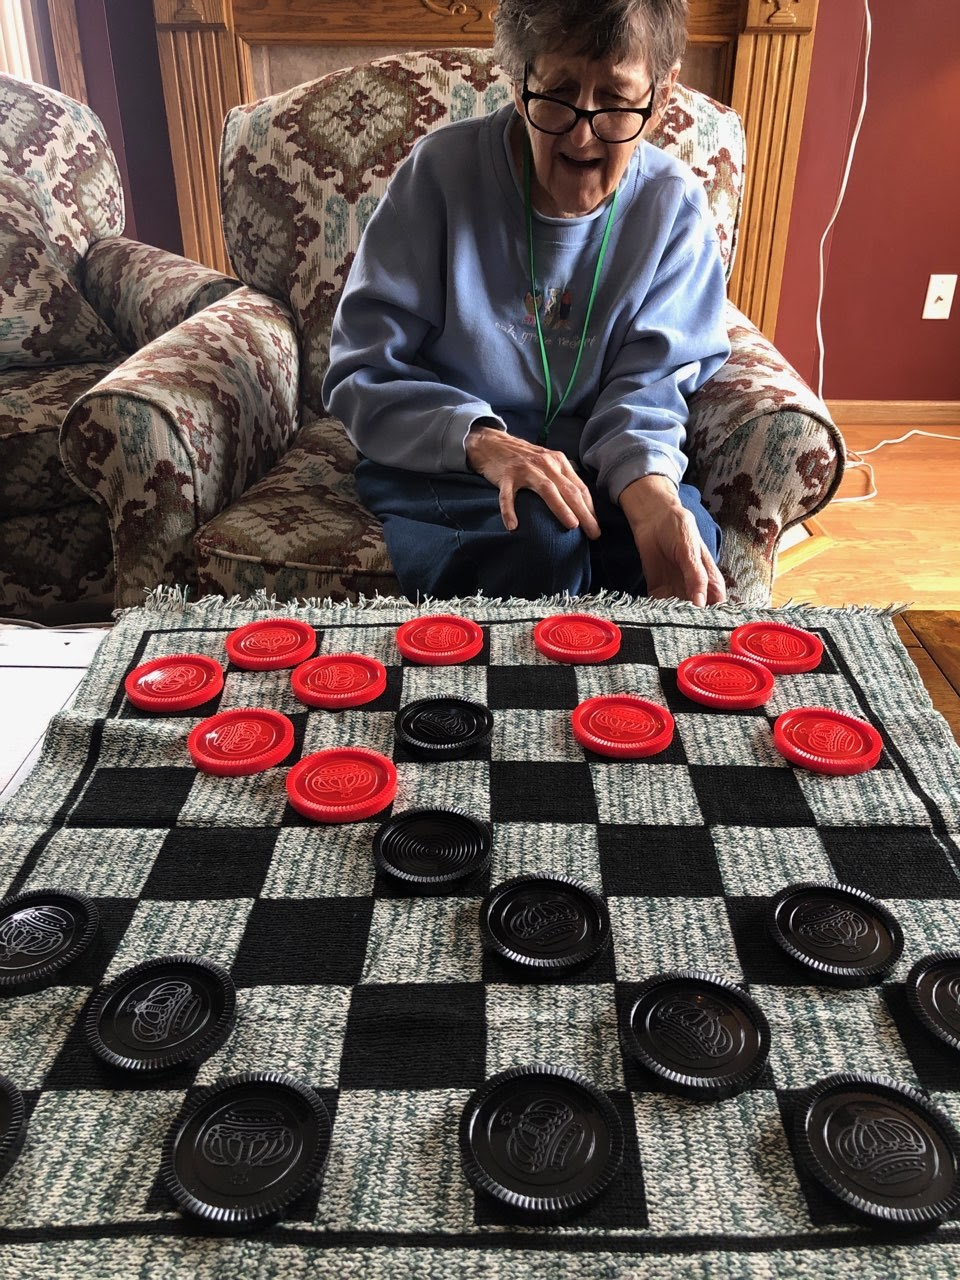 Intense game of checkers